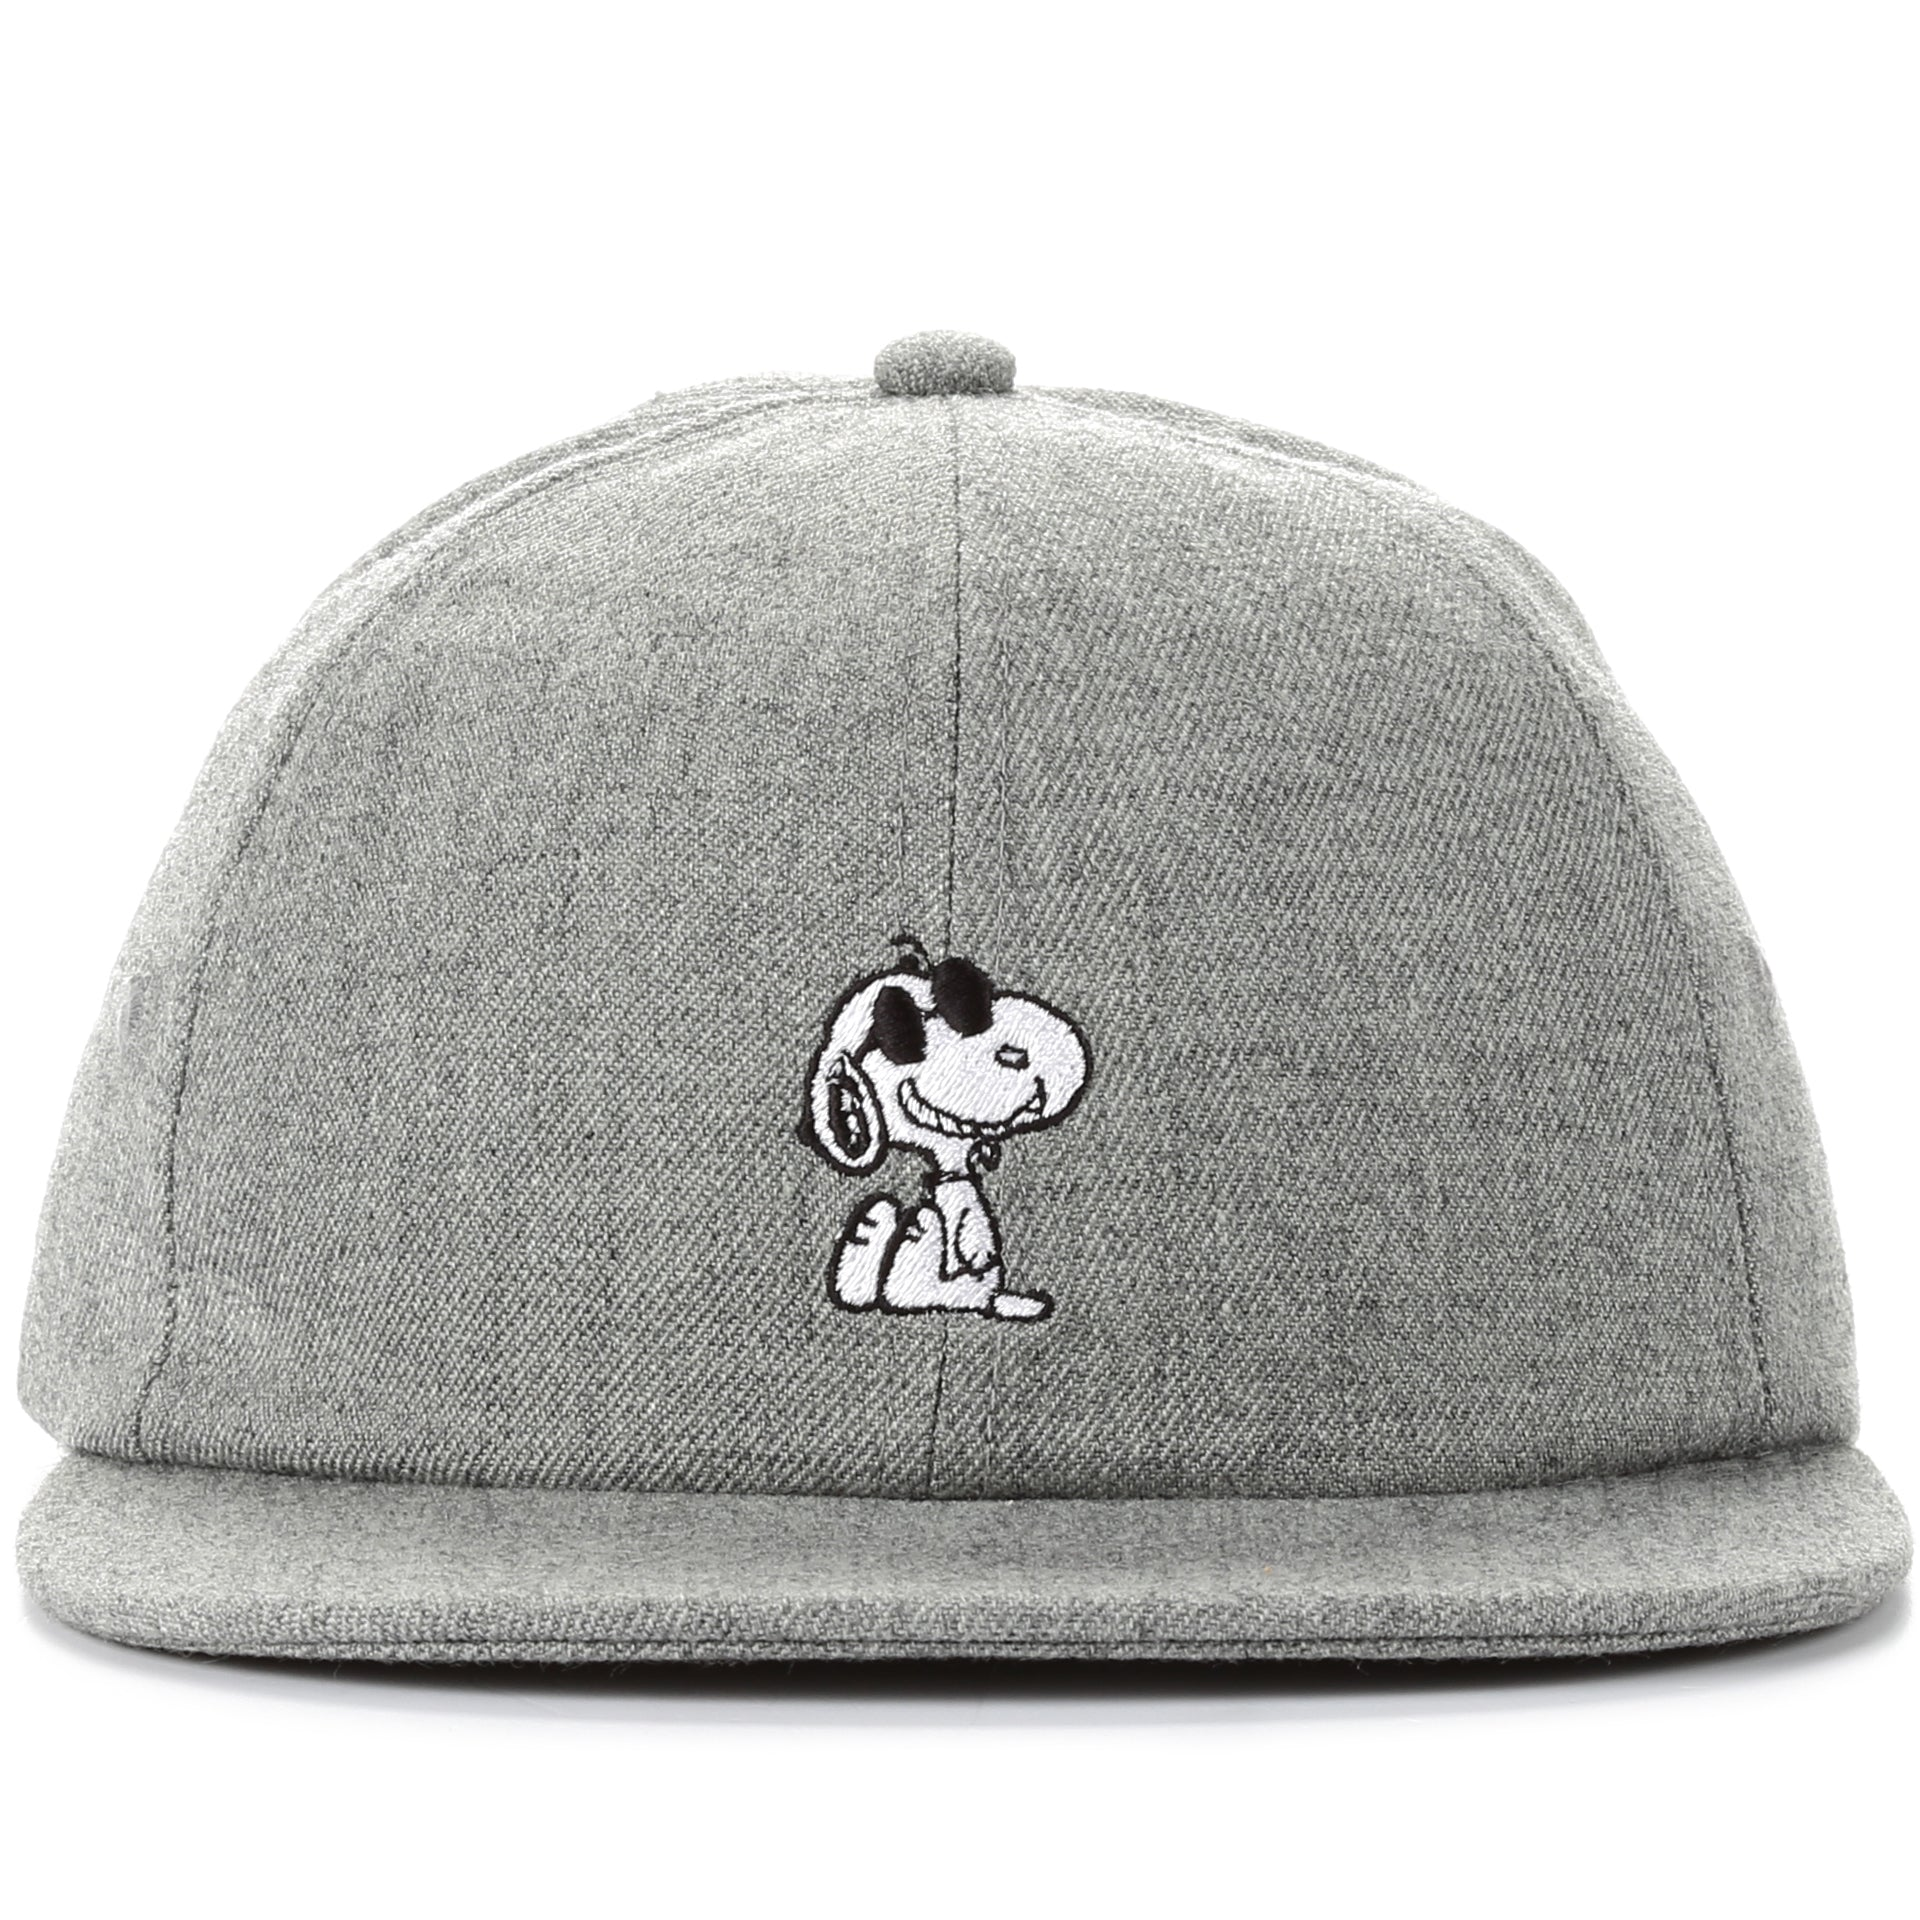 c272a8ef25 Vans x Peanuts Jockey Hat - Heather Grey - New Star